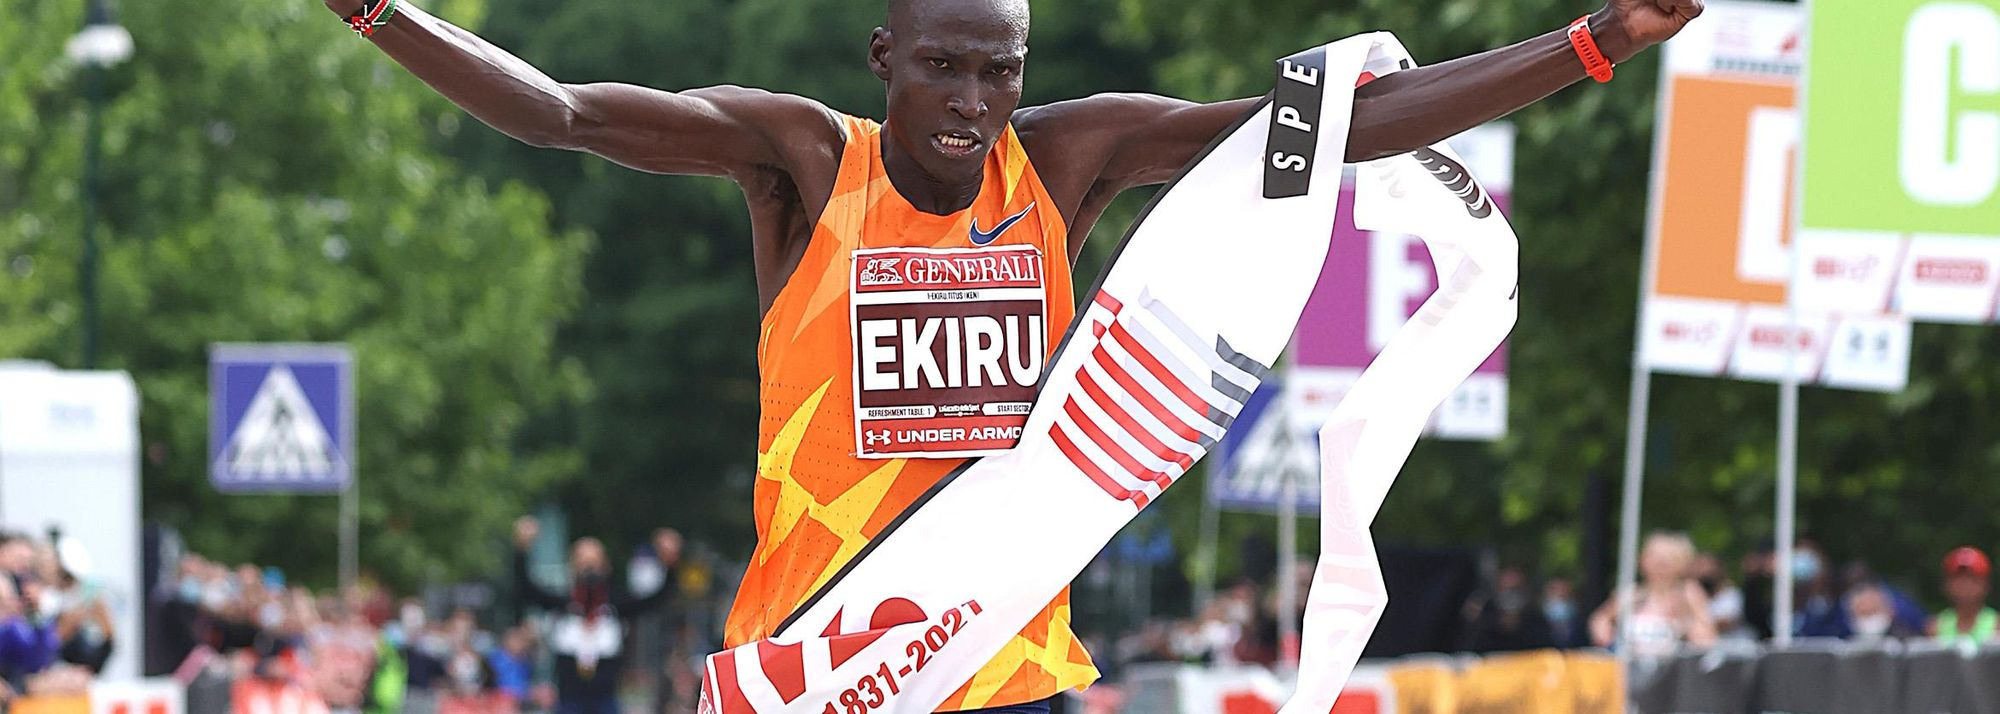 Kenya's Titus Ekiru and Ethiopia's Hiwot Gebrekidan recorded world-leading times of 2:02:57 and 2:19:35 to break the Italian all-comers' records at the Generali Milano Marathon, a World Athletics Label road race, on Sunday (16).